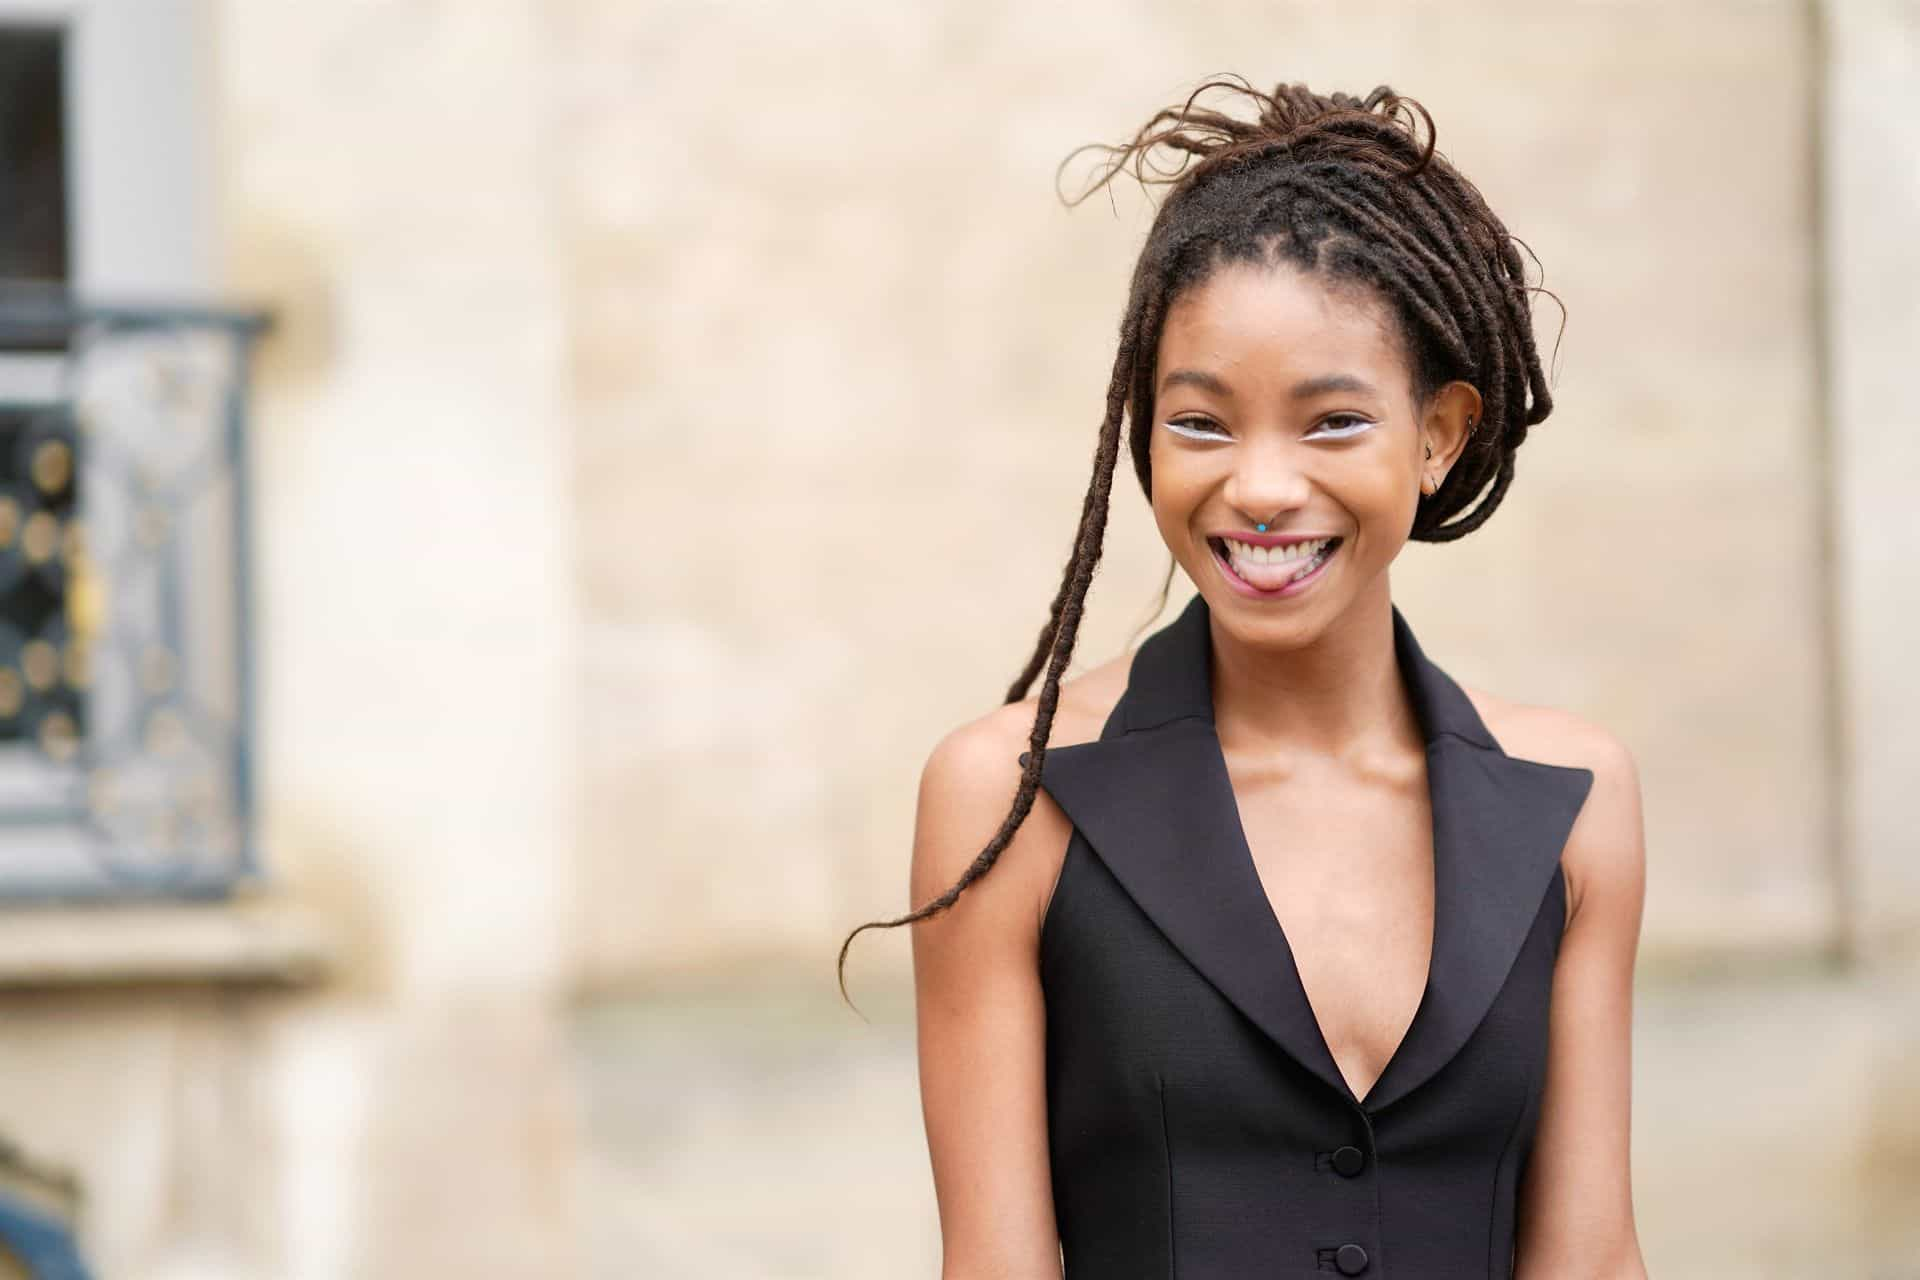 Protective hairstyle for natural hair